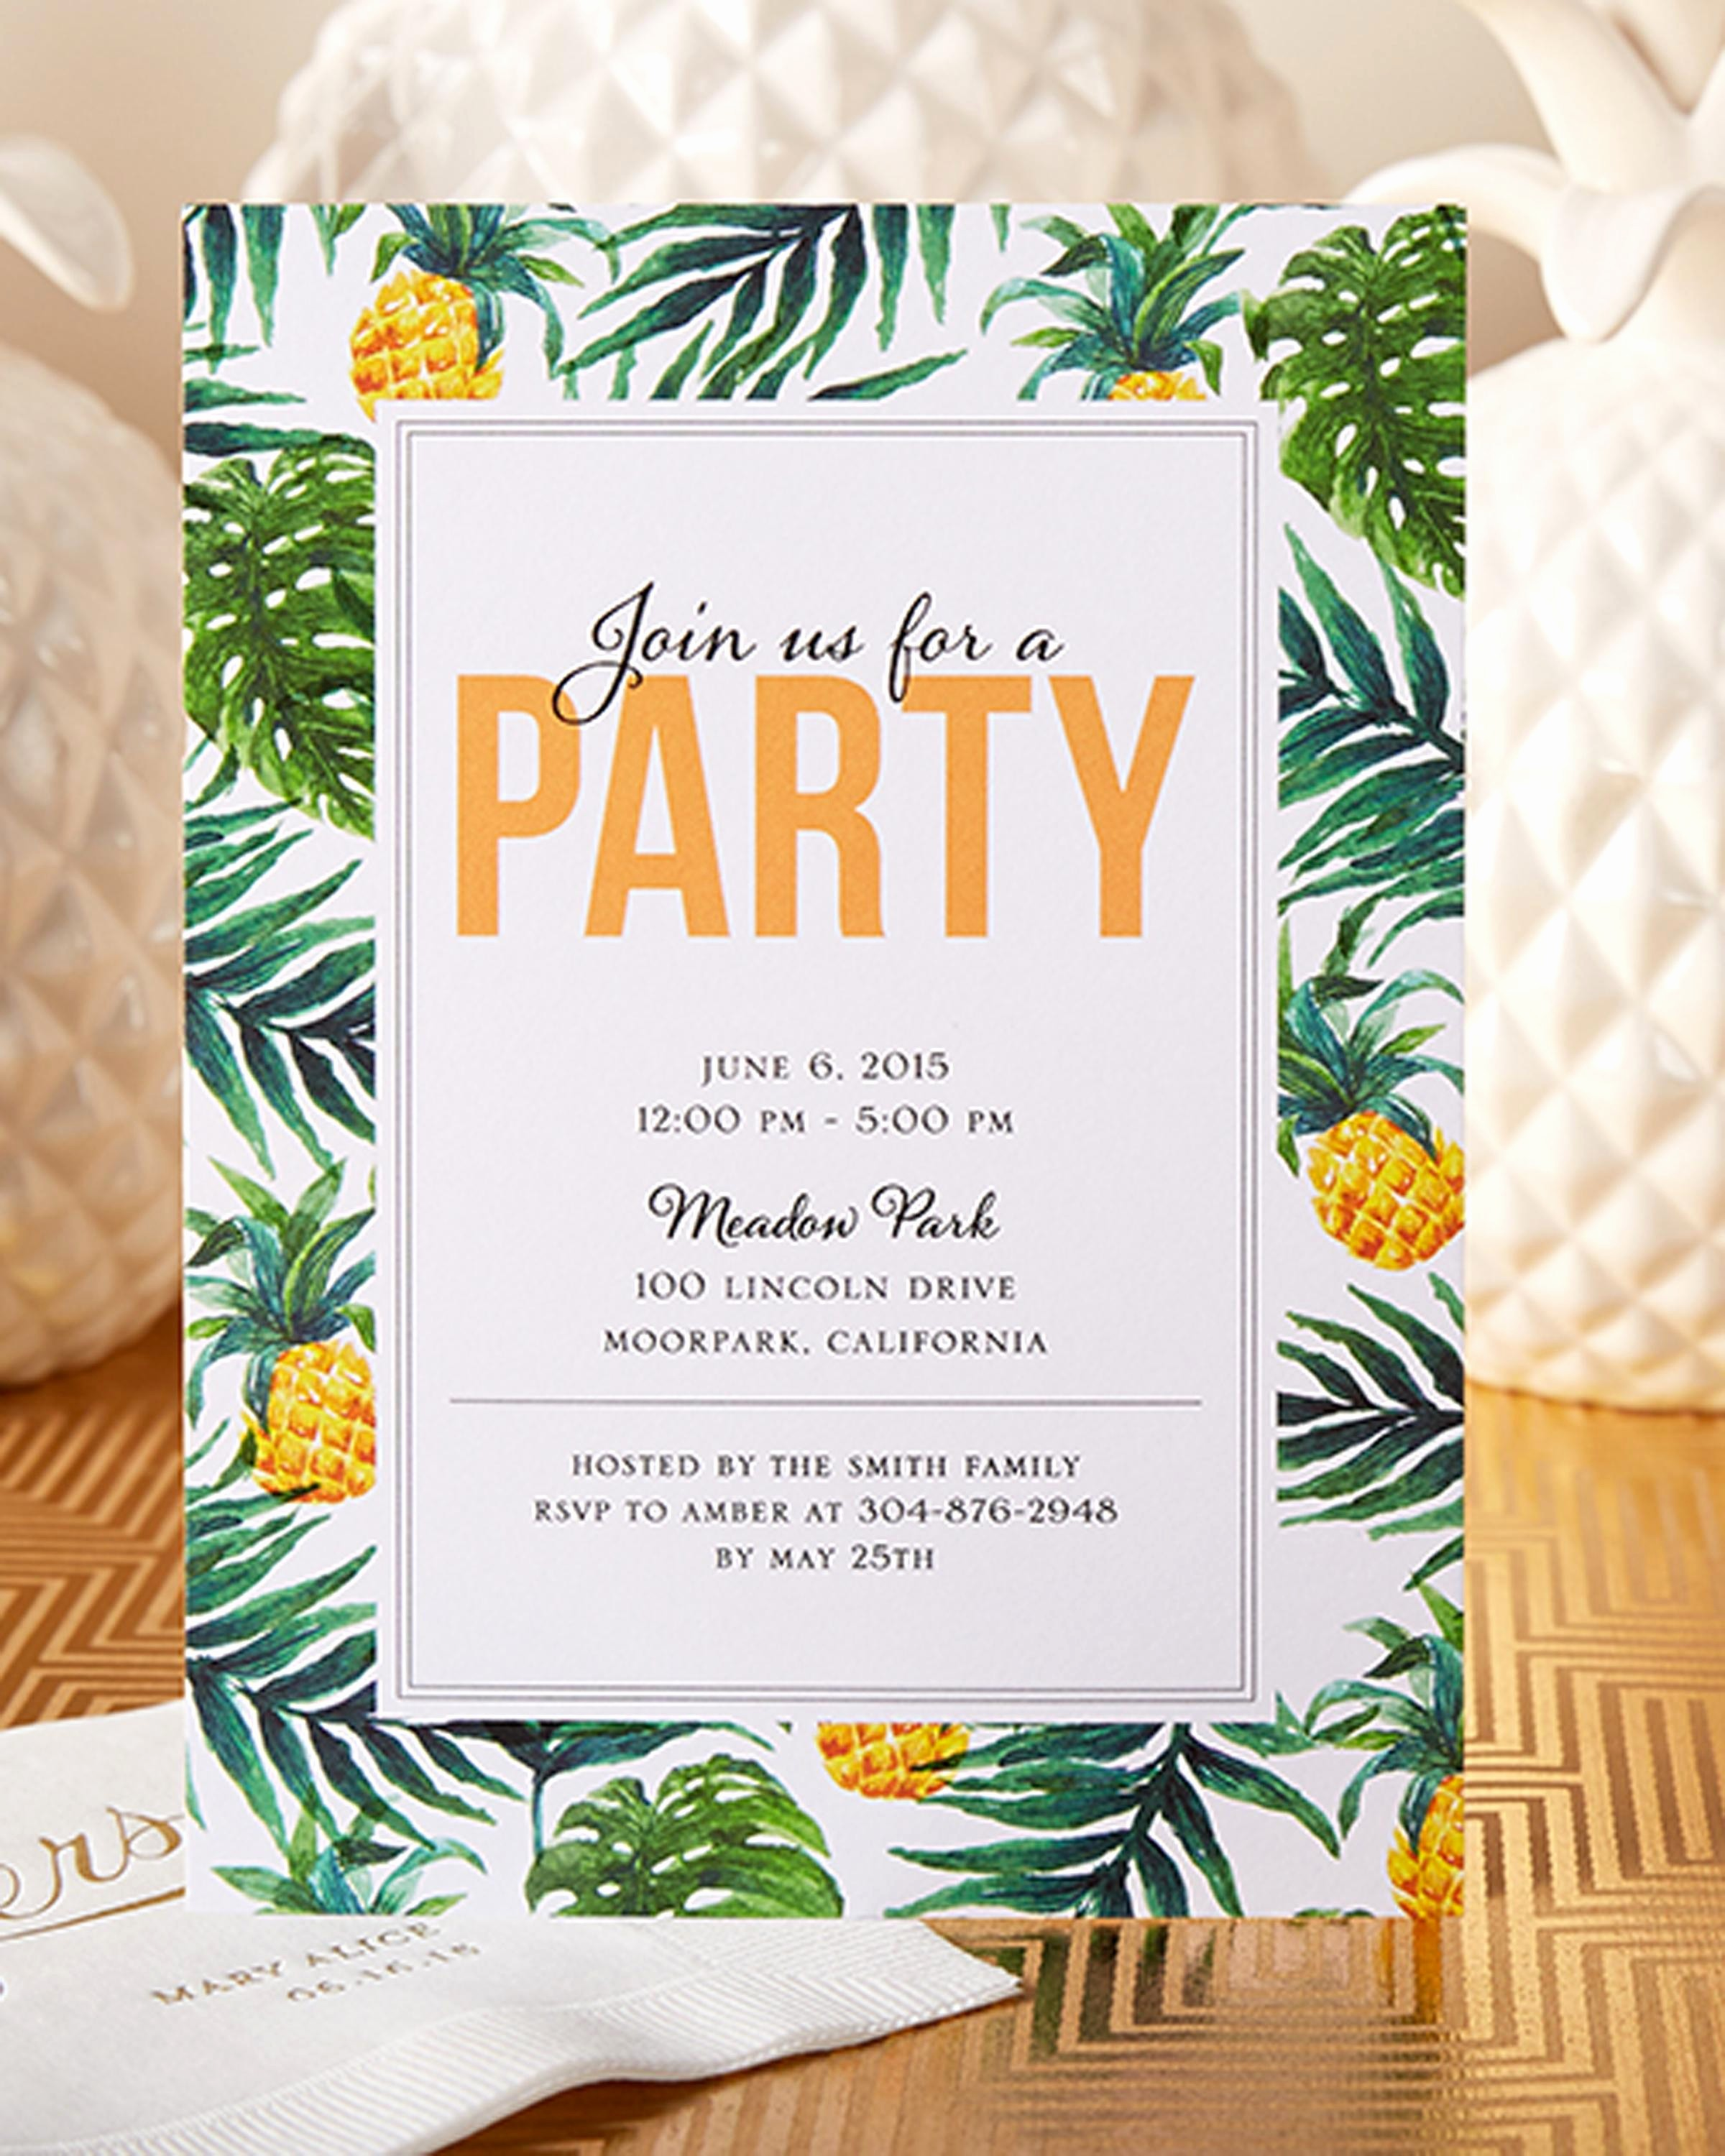 Luau Party Invitations Templates Free Luxury Others Custom Luau Invitations for Your Tropical Getaway